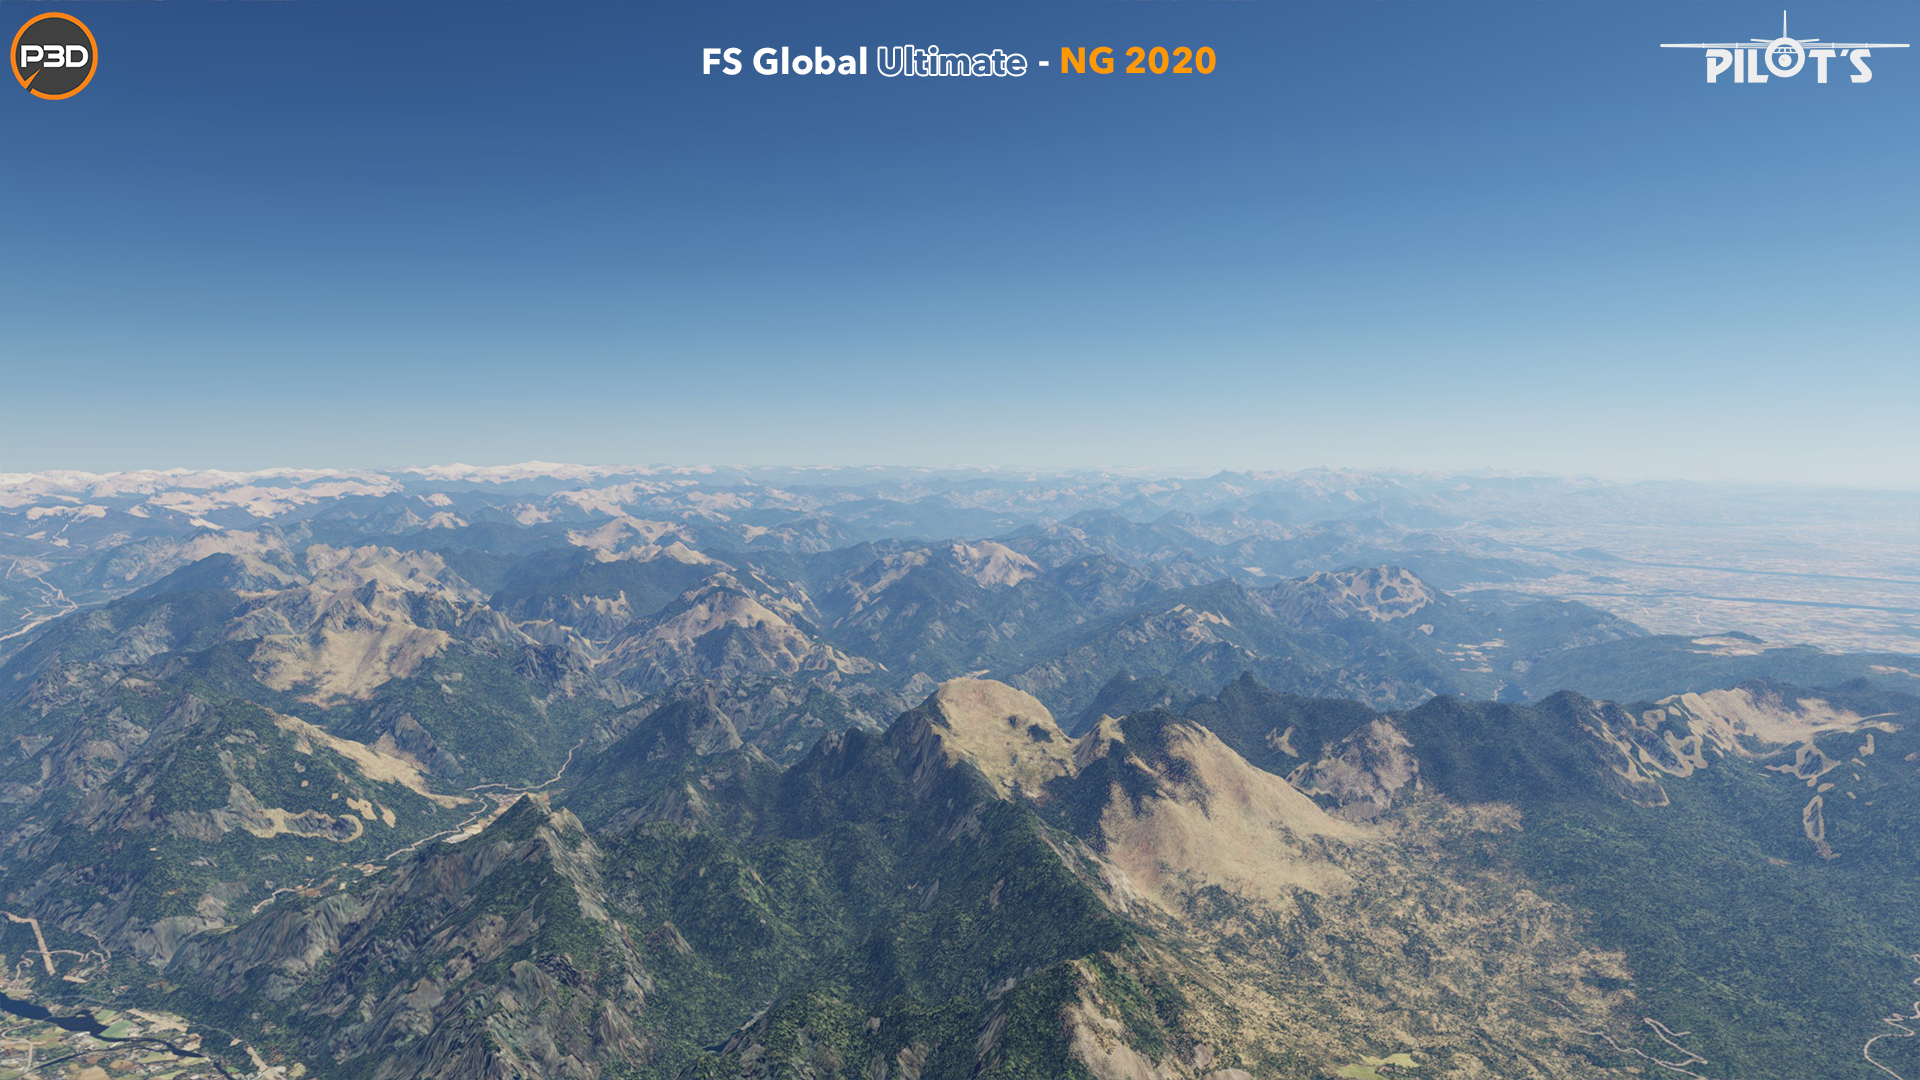 PILOT'S FSG - FS GLOBAL ULTIMATE - NG 2020 FTX P3D